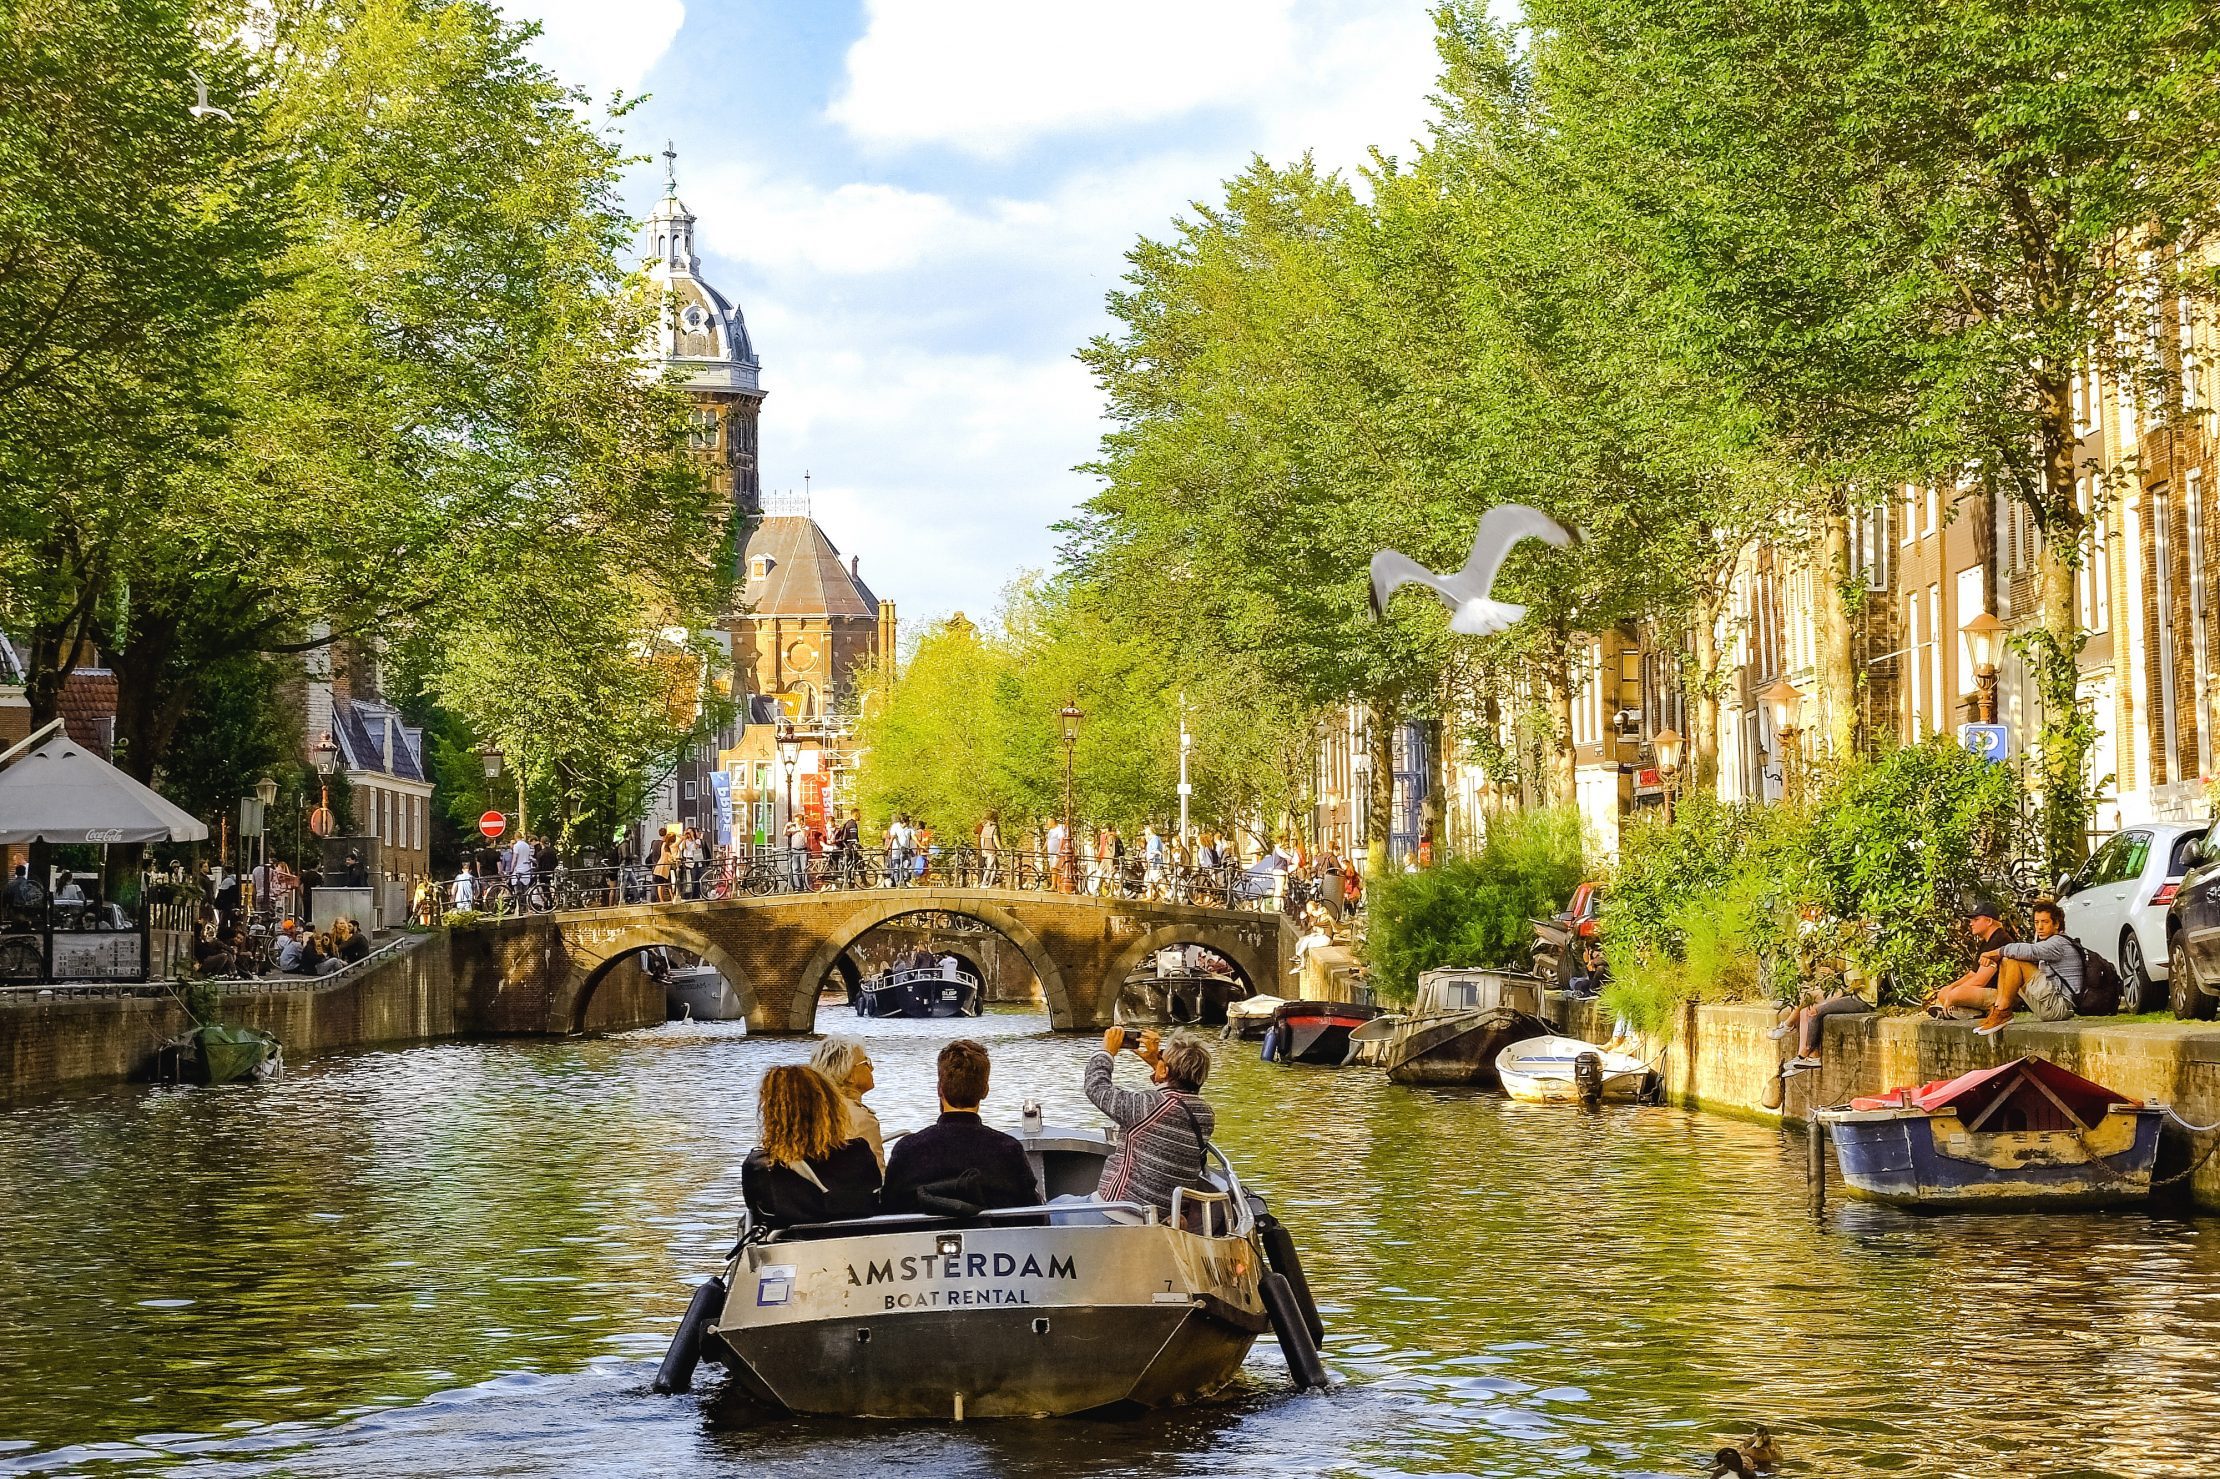 Boat trip along the canals of Amsterdam